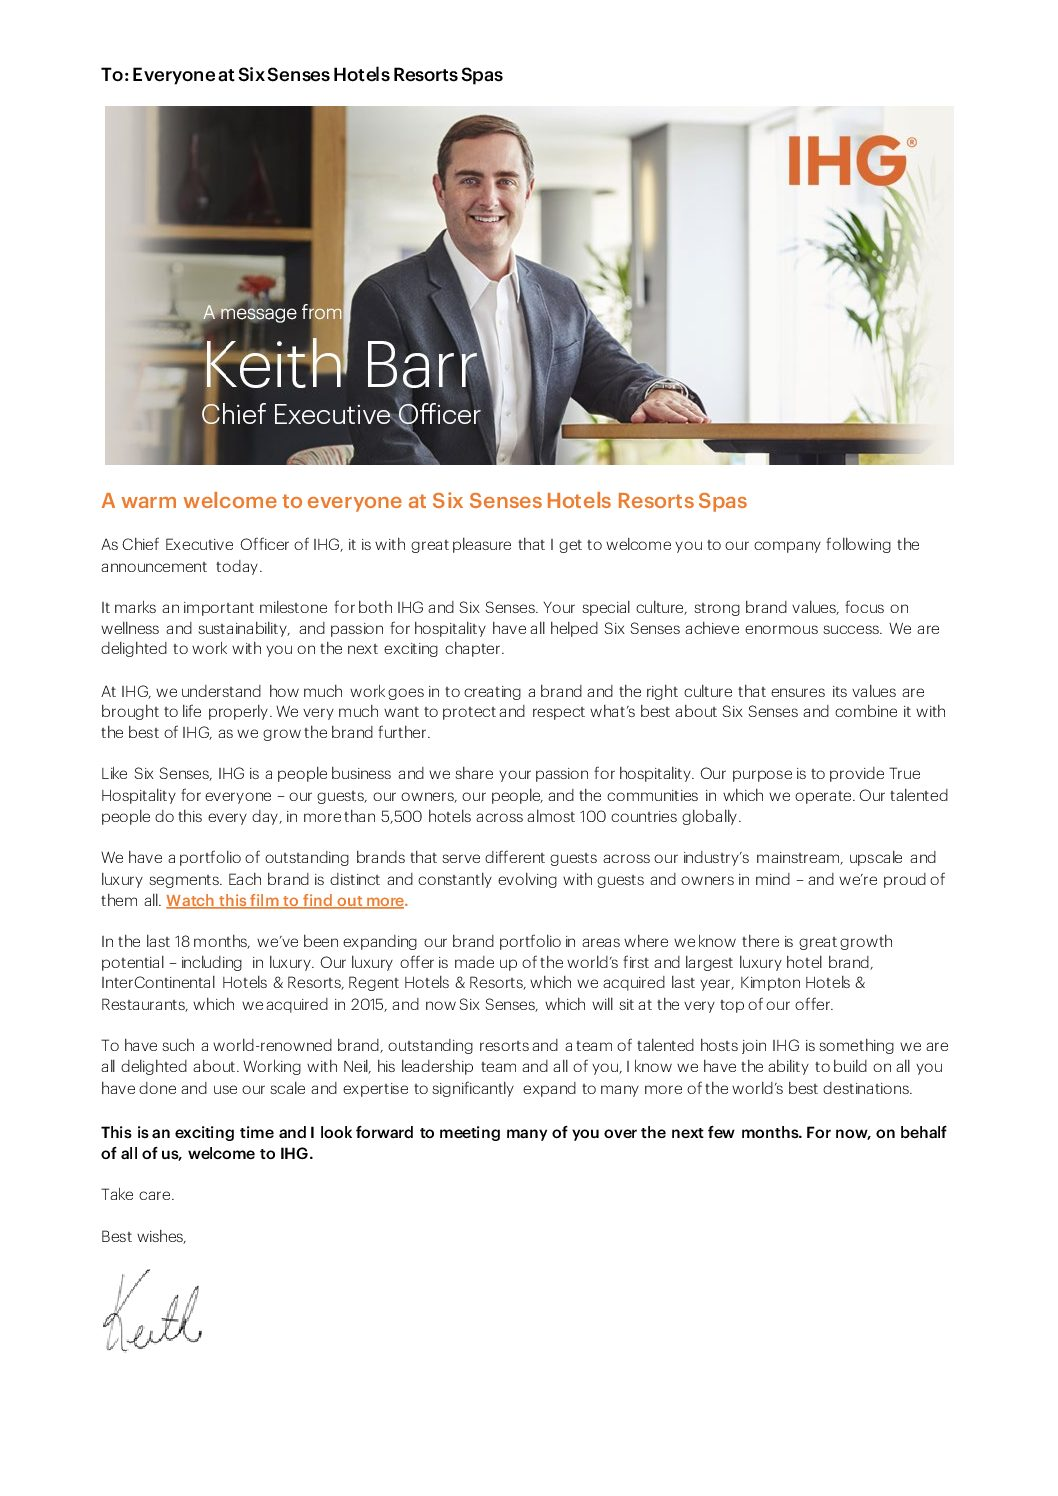 Welcome_message_from_Keith_Barr_to_everyone_at_Six_Senses_Hotels_Resorts_Spas_-_13_Feb_2019-pdf.jpg